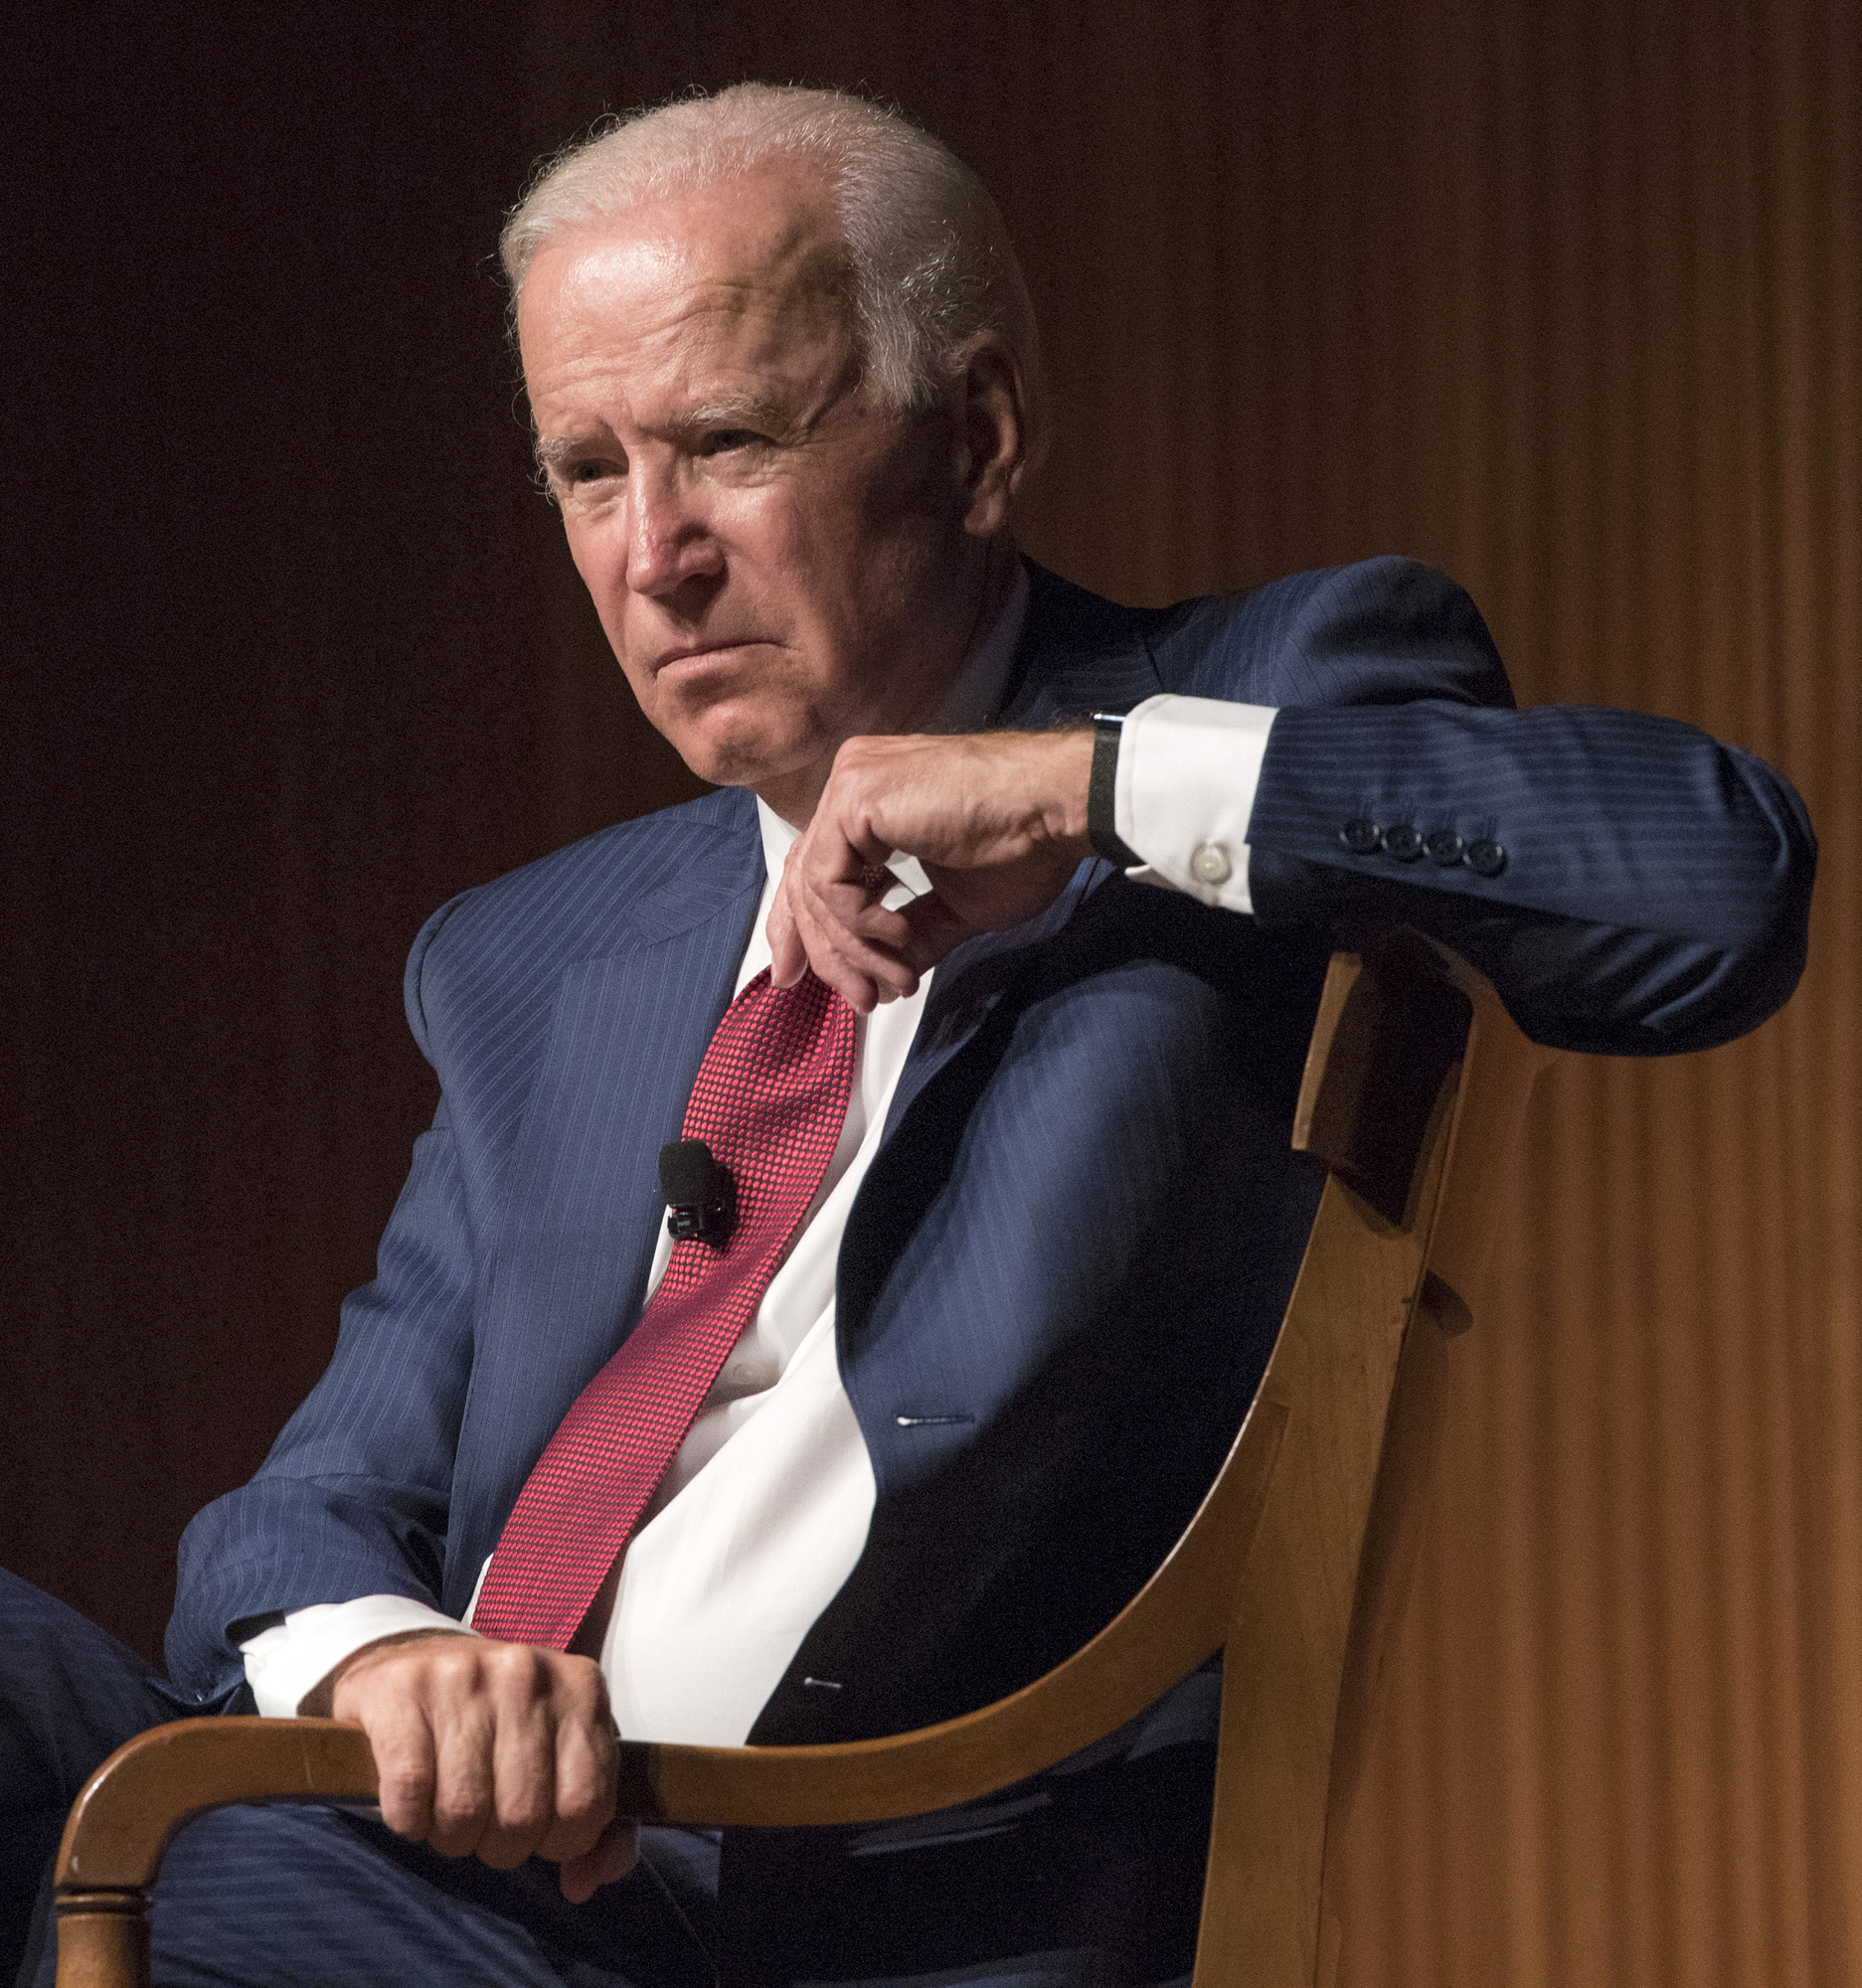 Joe Biden, the 47th vice president of the United States, was the featured guest for the Tom Johnson Lectureship at the LBJ Presidential Library on Tuesday, Oct. 3, 2017. The conversation was moderated by Mark Updegrove, former director of the LBJ Library. 